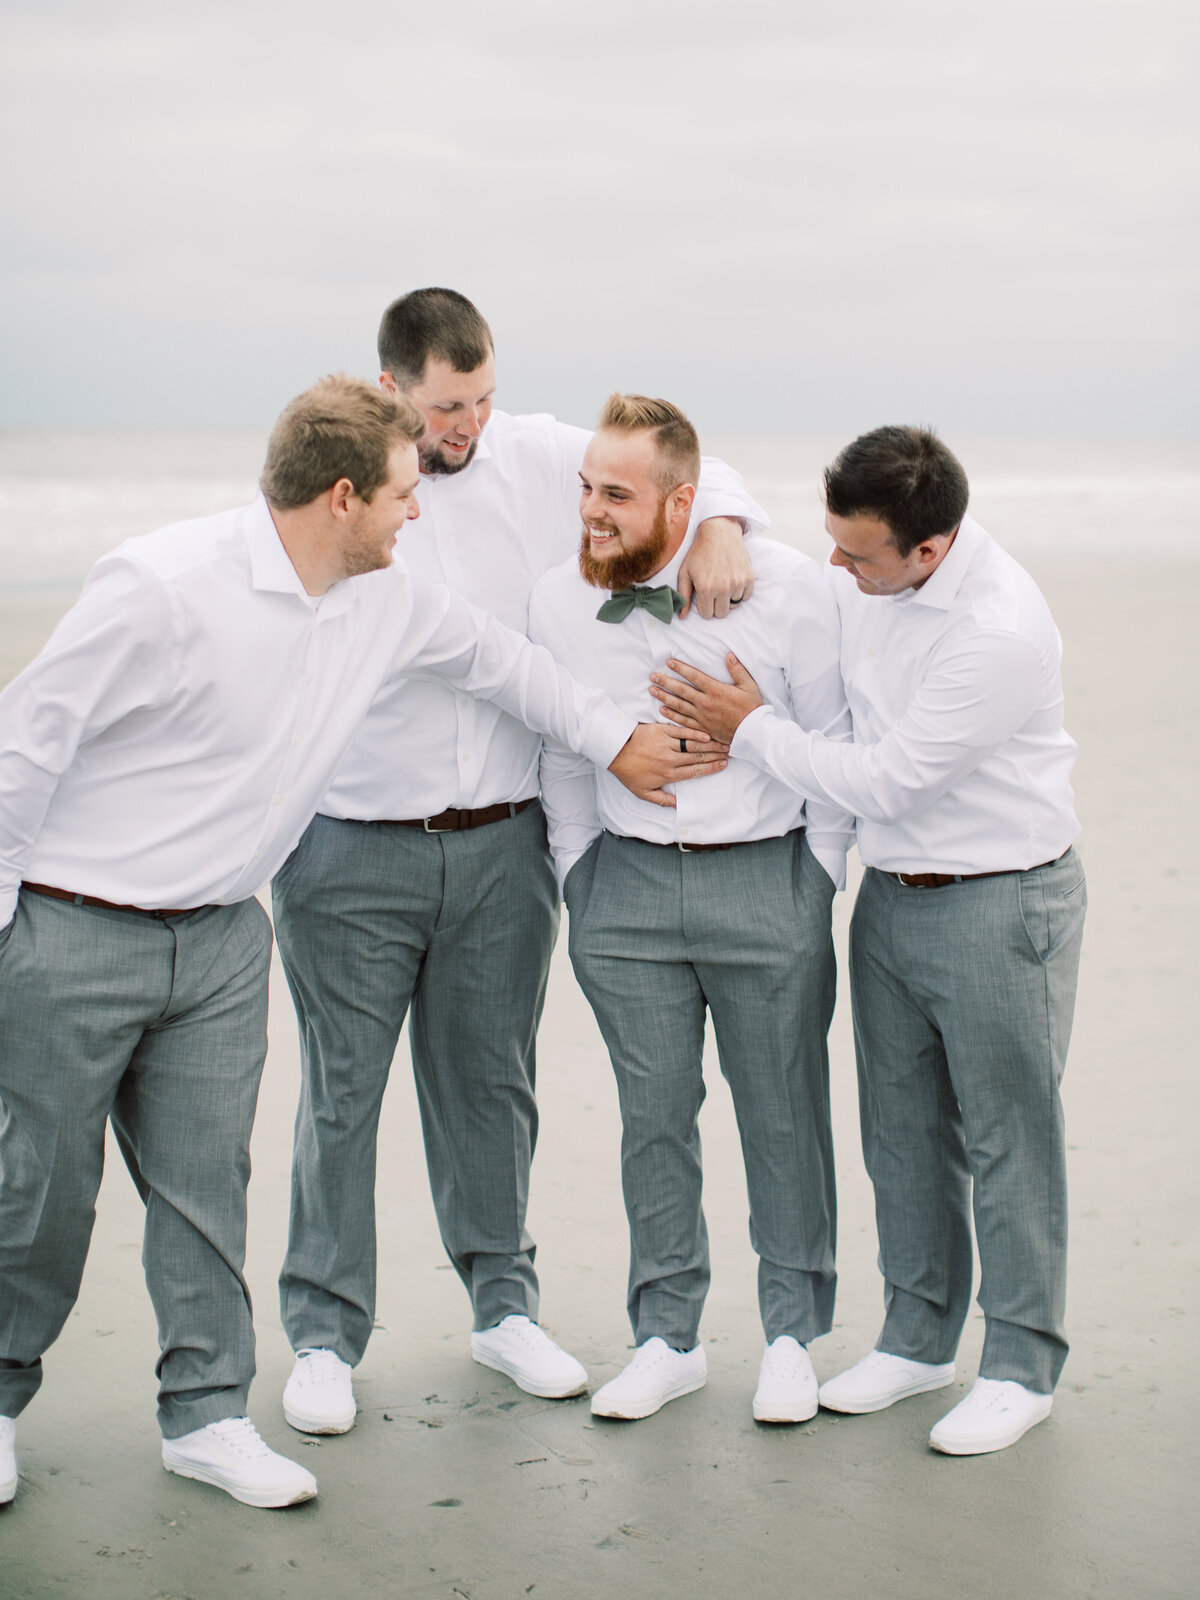 Charleston Wedding Photographer | Beaufort Wedding Photographer | Savannah Wedding Photographer | Santa Barbara Wedding Photographer | San Luis Obispo Wedding Photographer-25